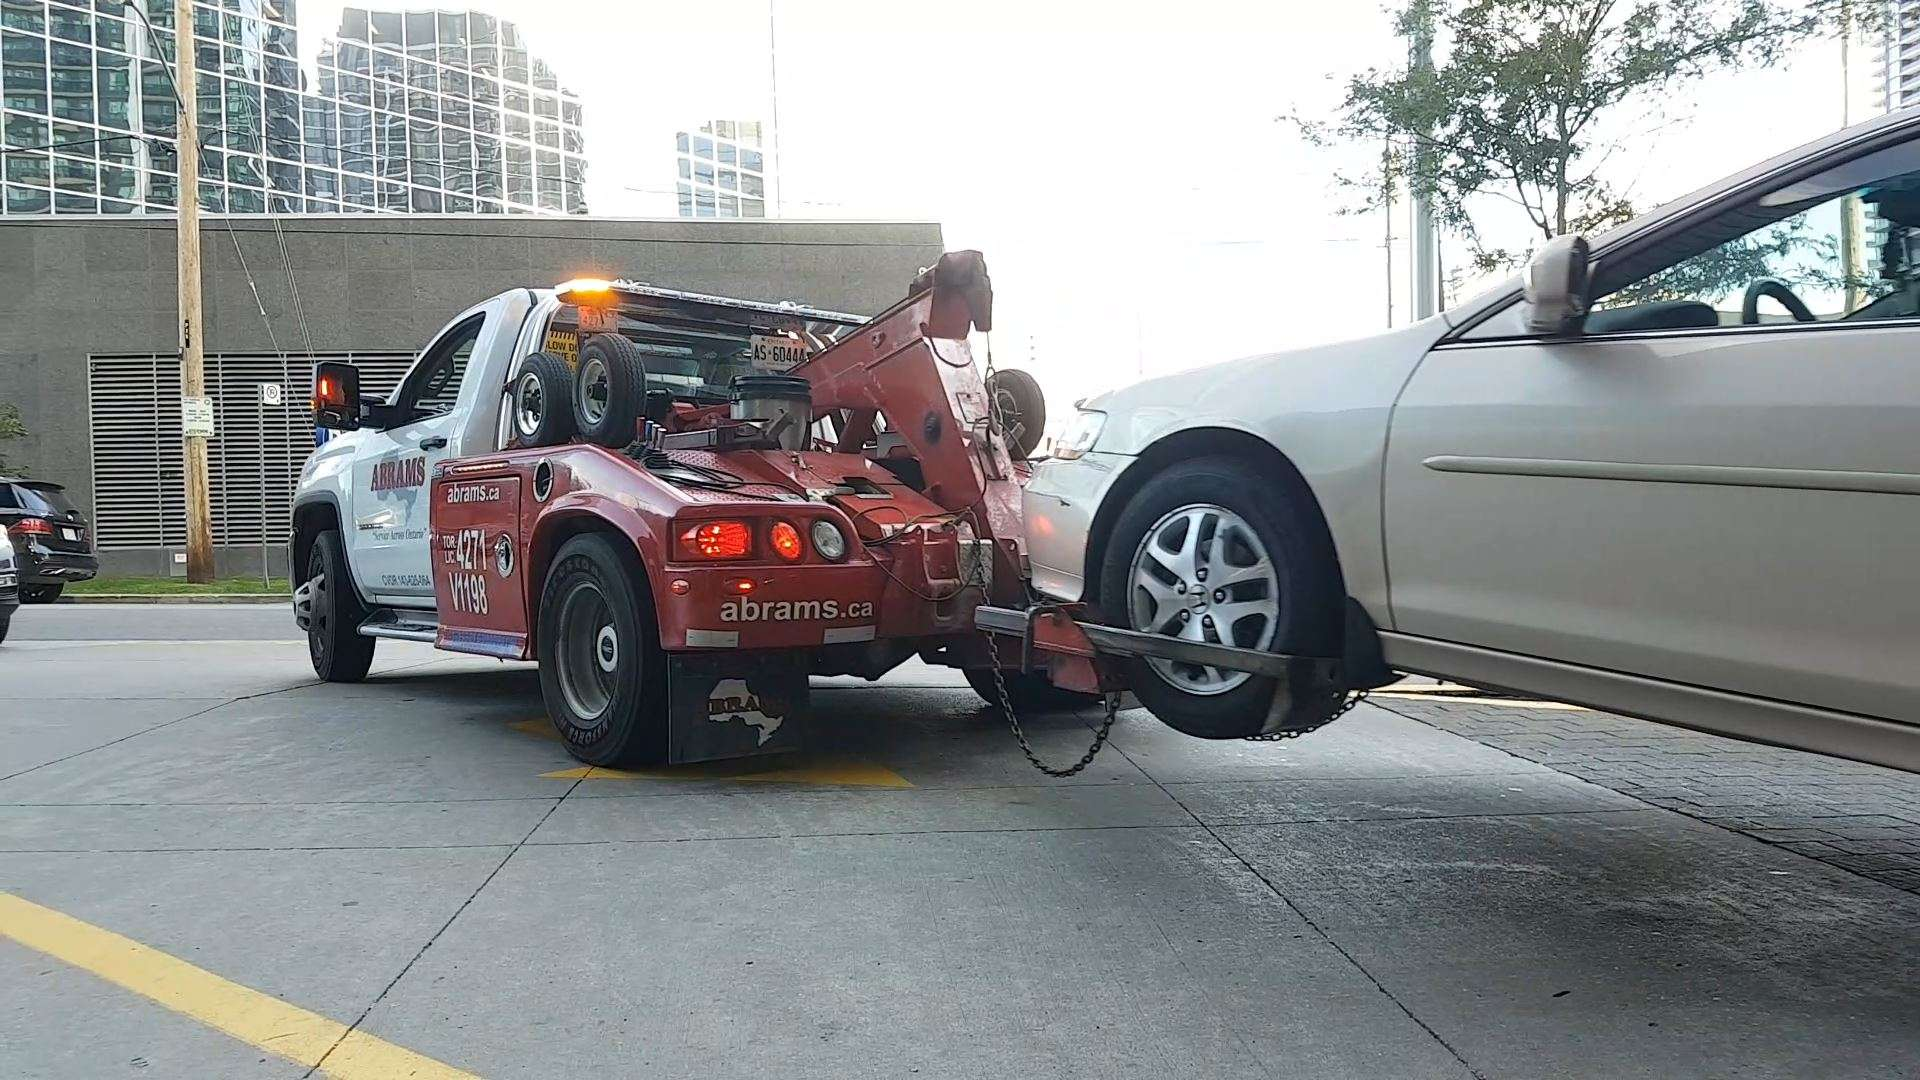 Tow truck driver pulls the car from the underground garage to the street